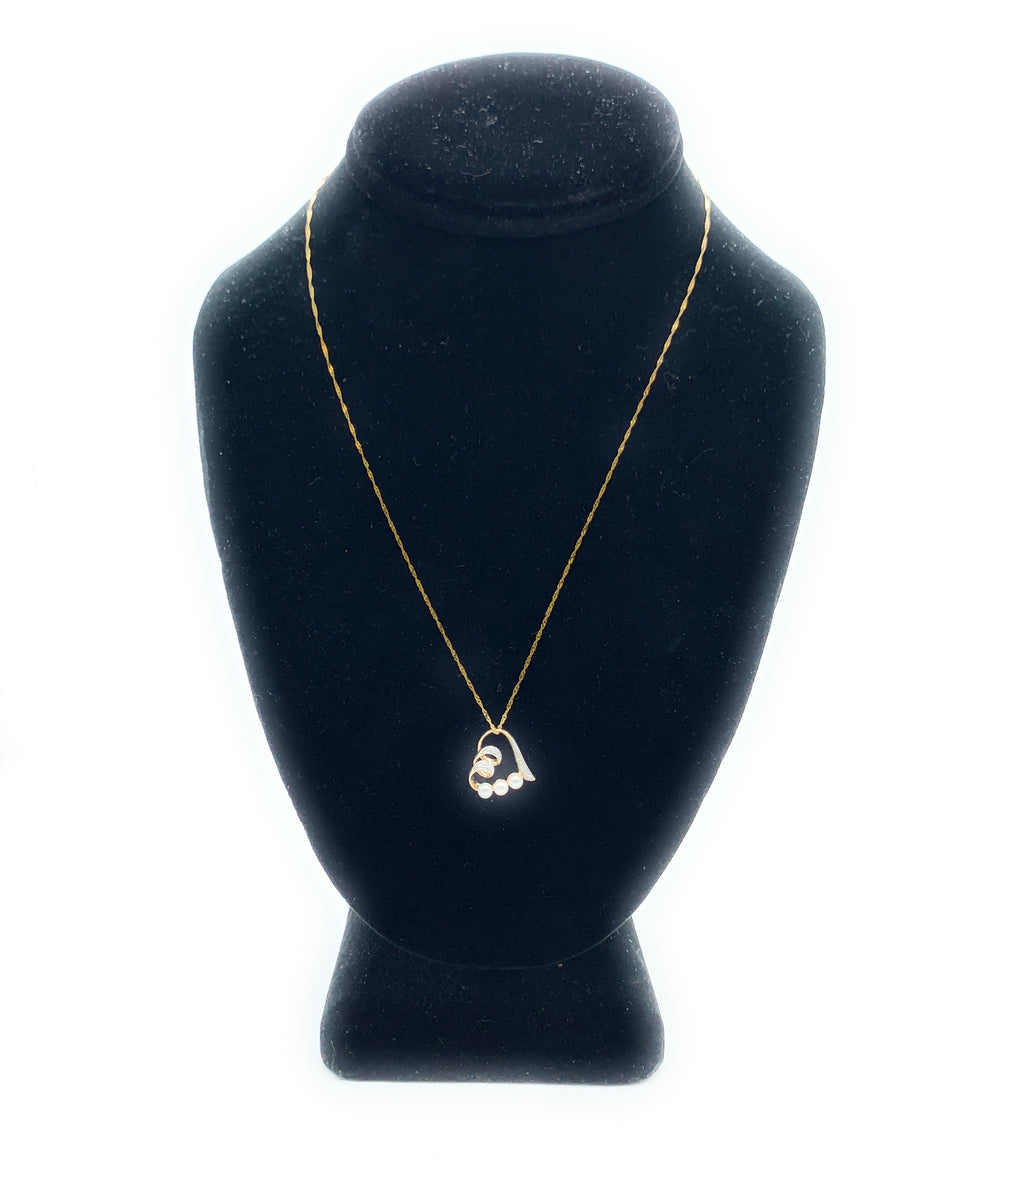 14K Yellow Gold, Pearl & Diamond Heart Pendant Necklace